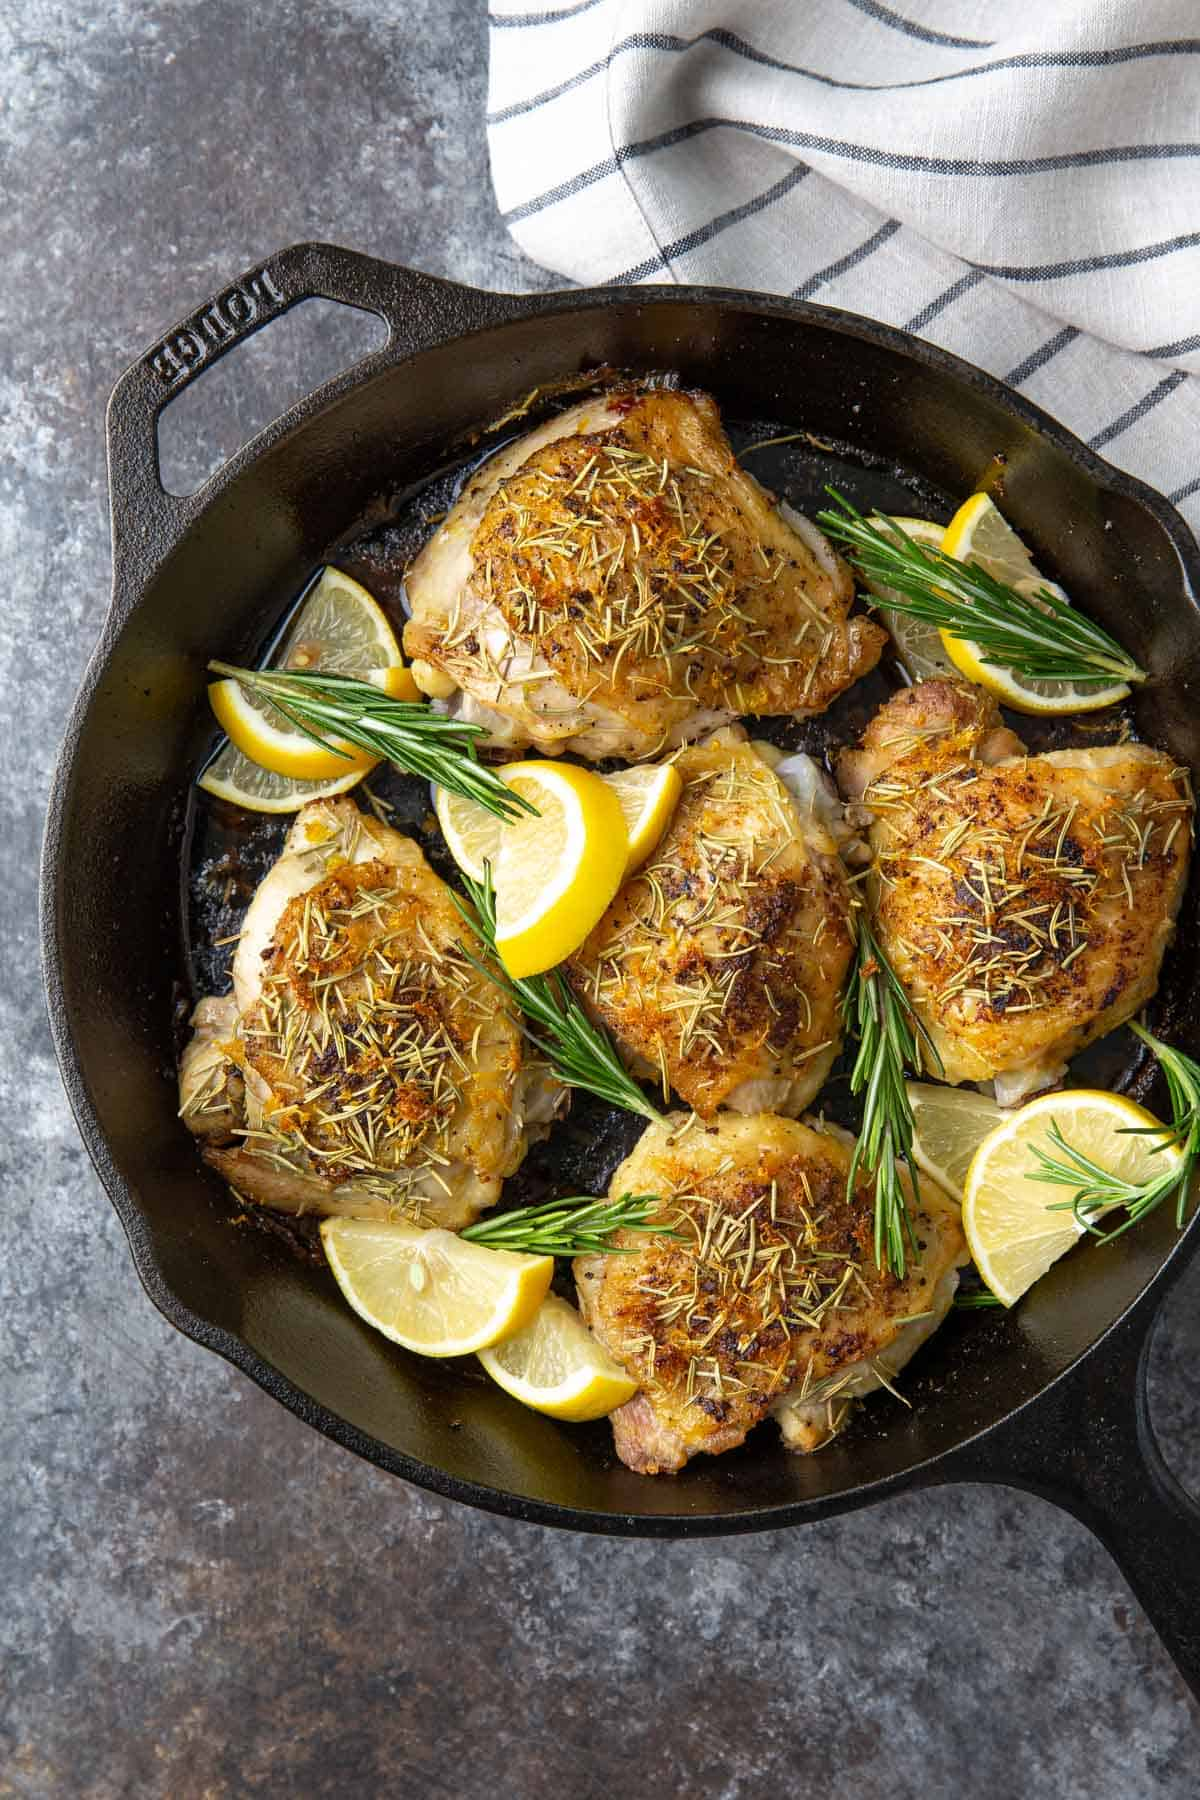 Overhead view of baked lemon rosemary chicken in a cast iron skillet.